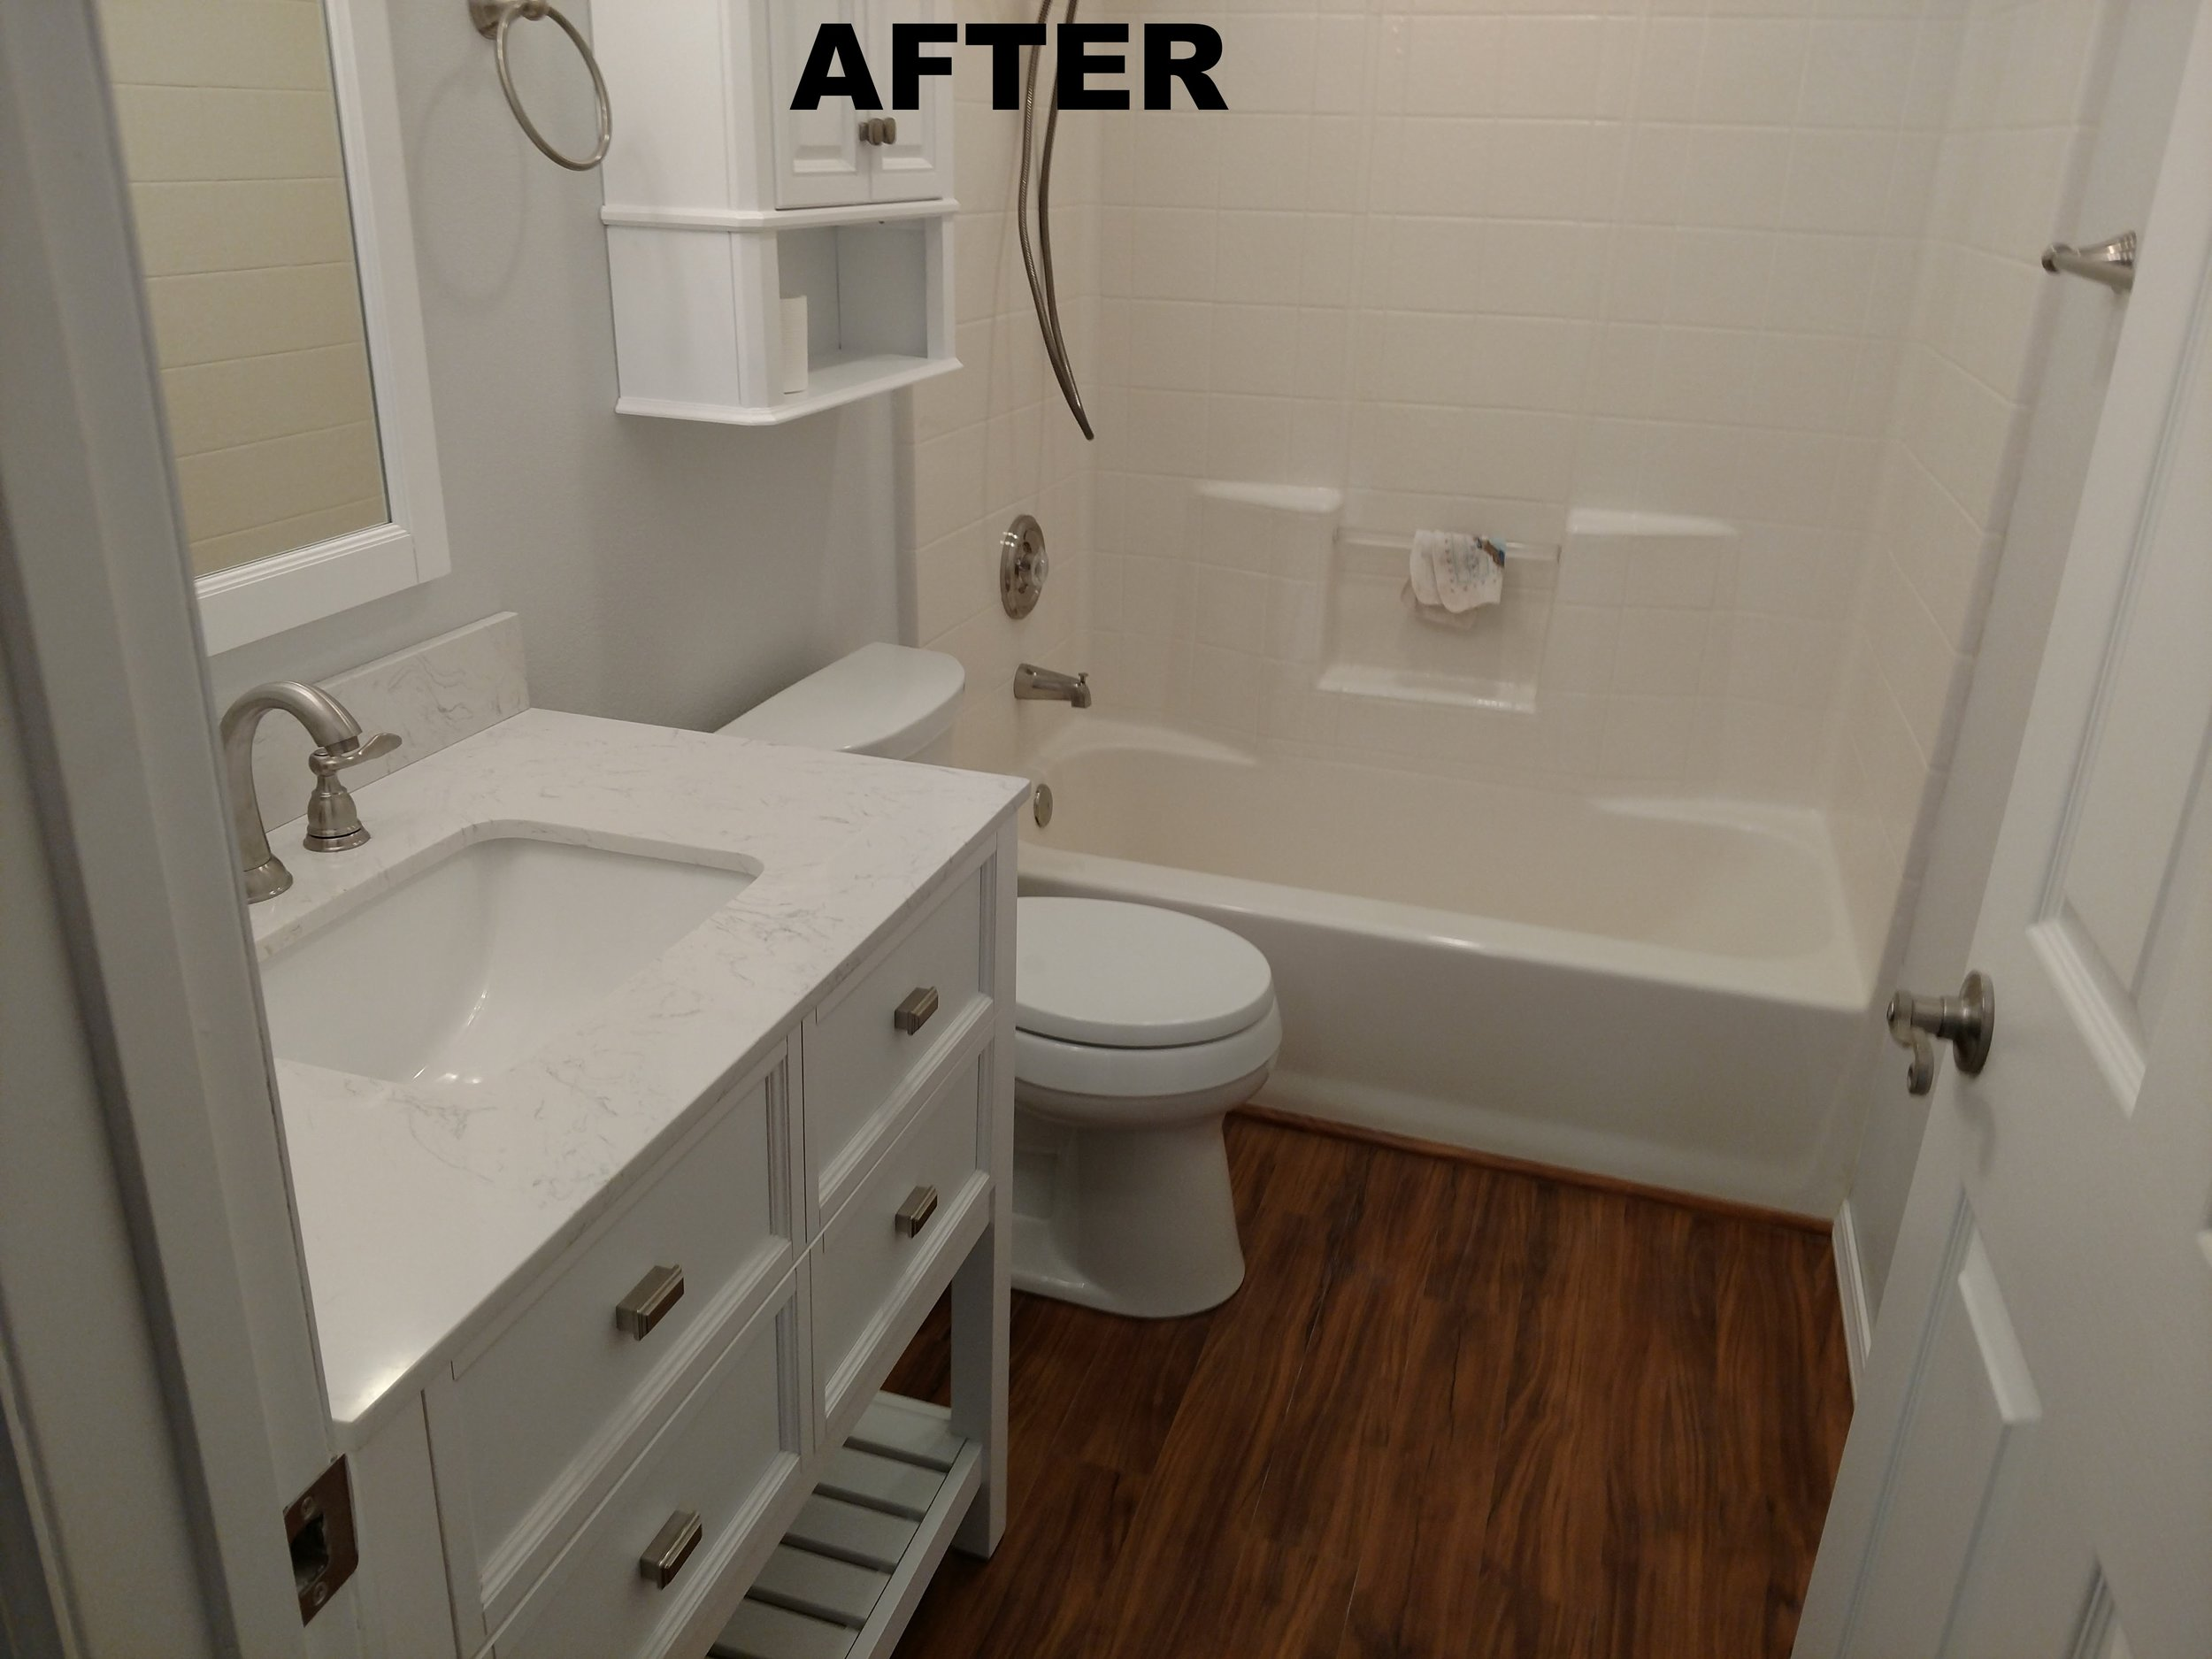 bathroom remodel after.jpg